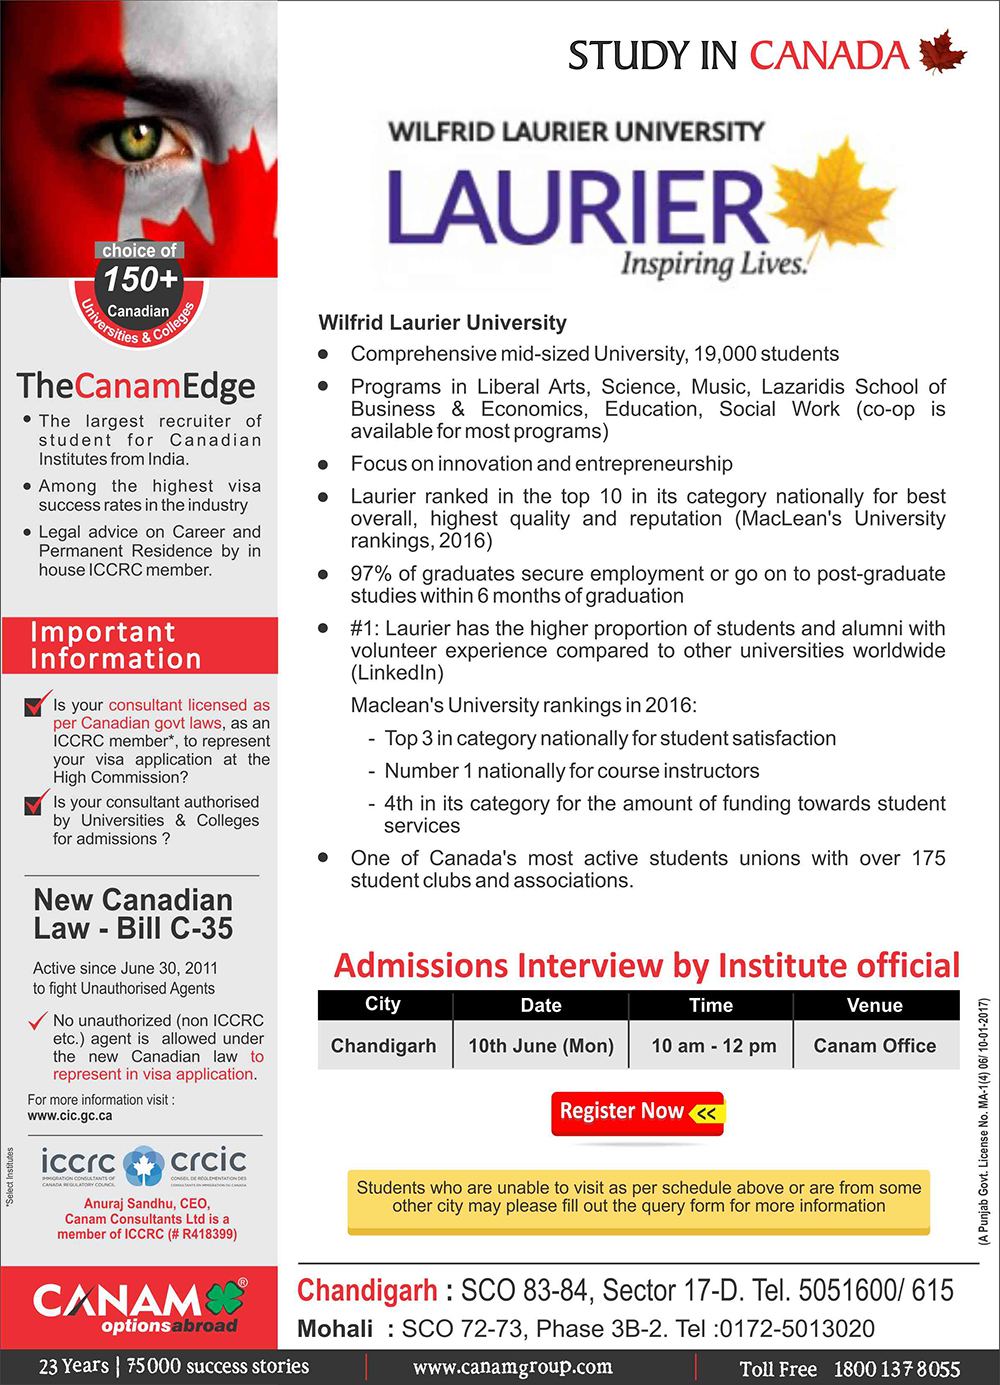 wilfrid-laurier-university-about-us